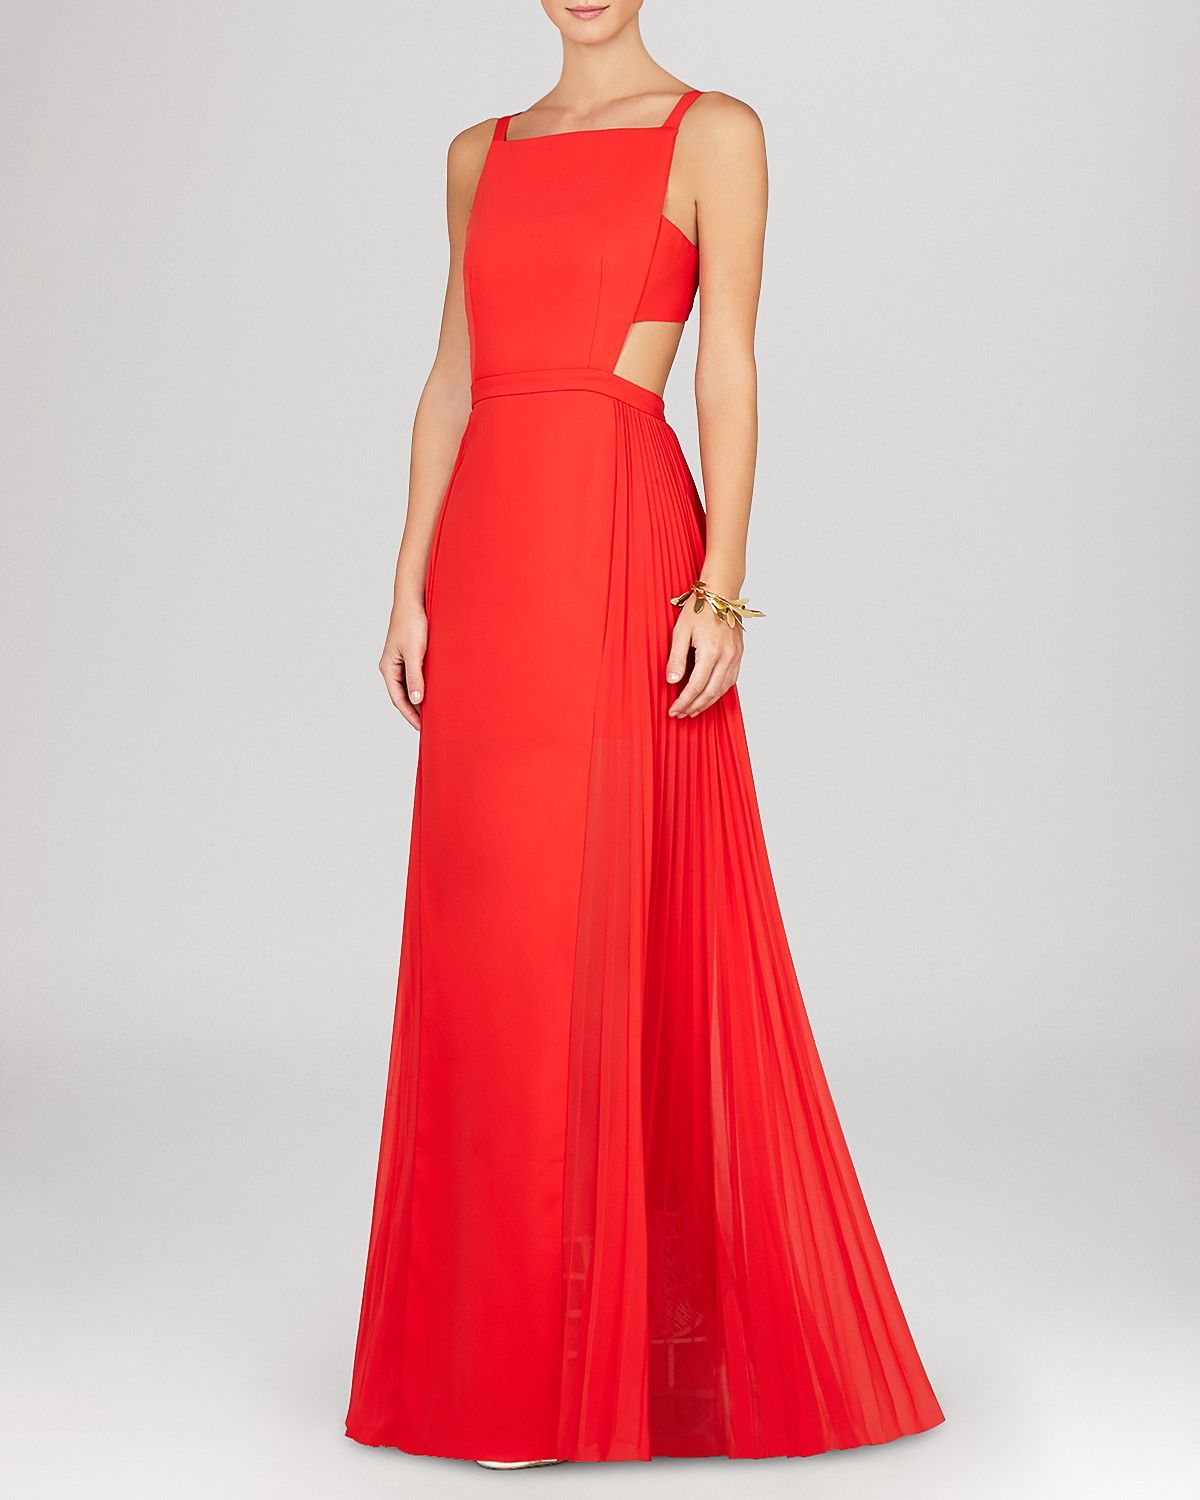 d19591a2bd BCBGMAXAZRIA Gown - Brielle Sleeveless Side Cutout Pleat Skirt |  Bloomingdale's - How Beautiful would this be for bridesmaids, if you had a  red theme